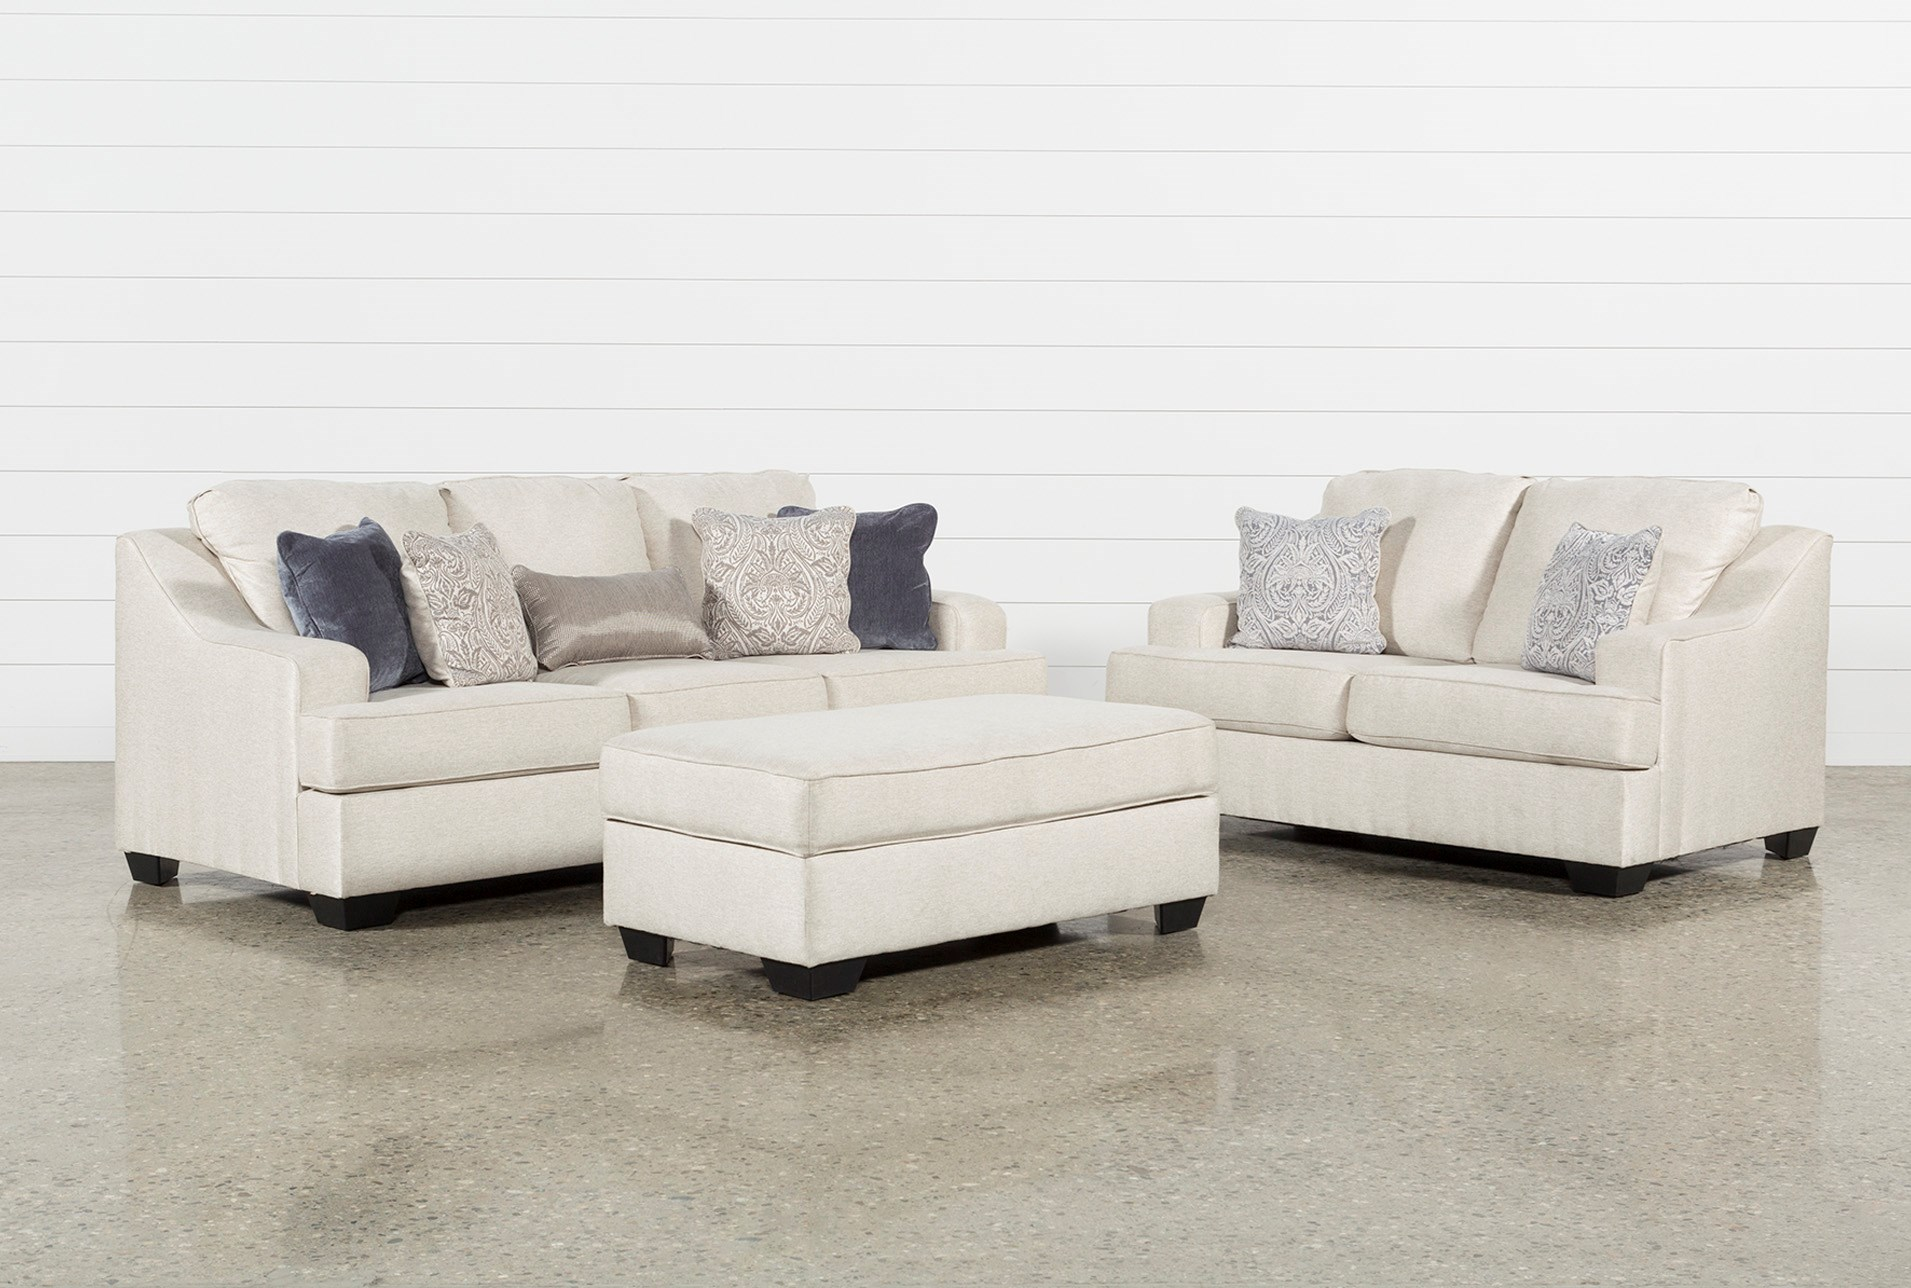 Brumbeck 3 piece living room set with storage ottoman qty 1 has been successfully added to your cart